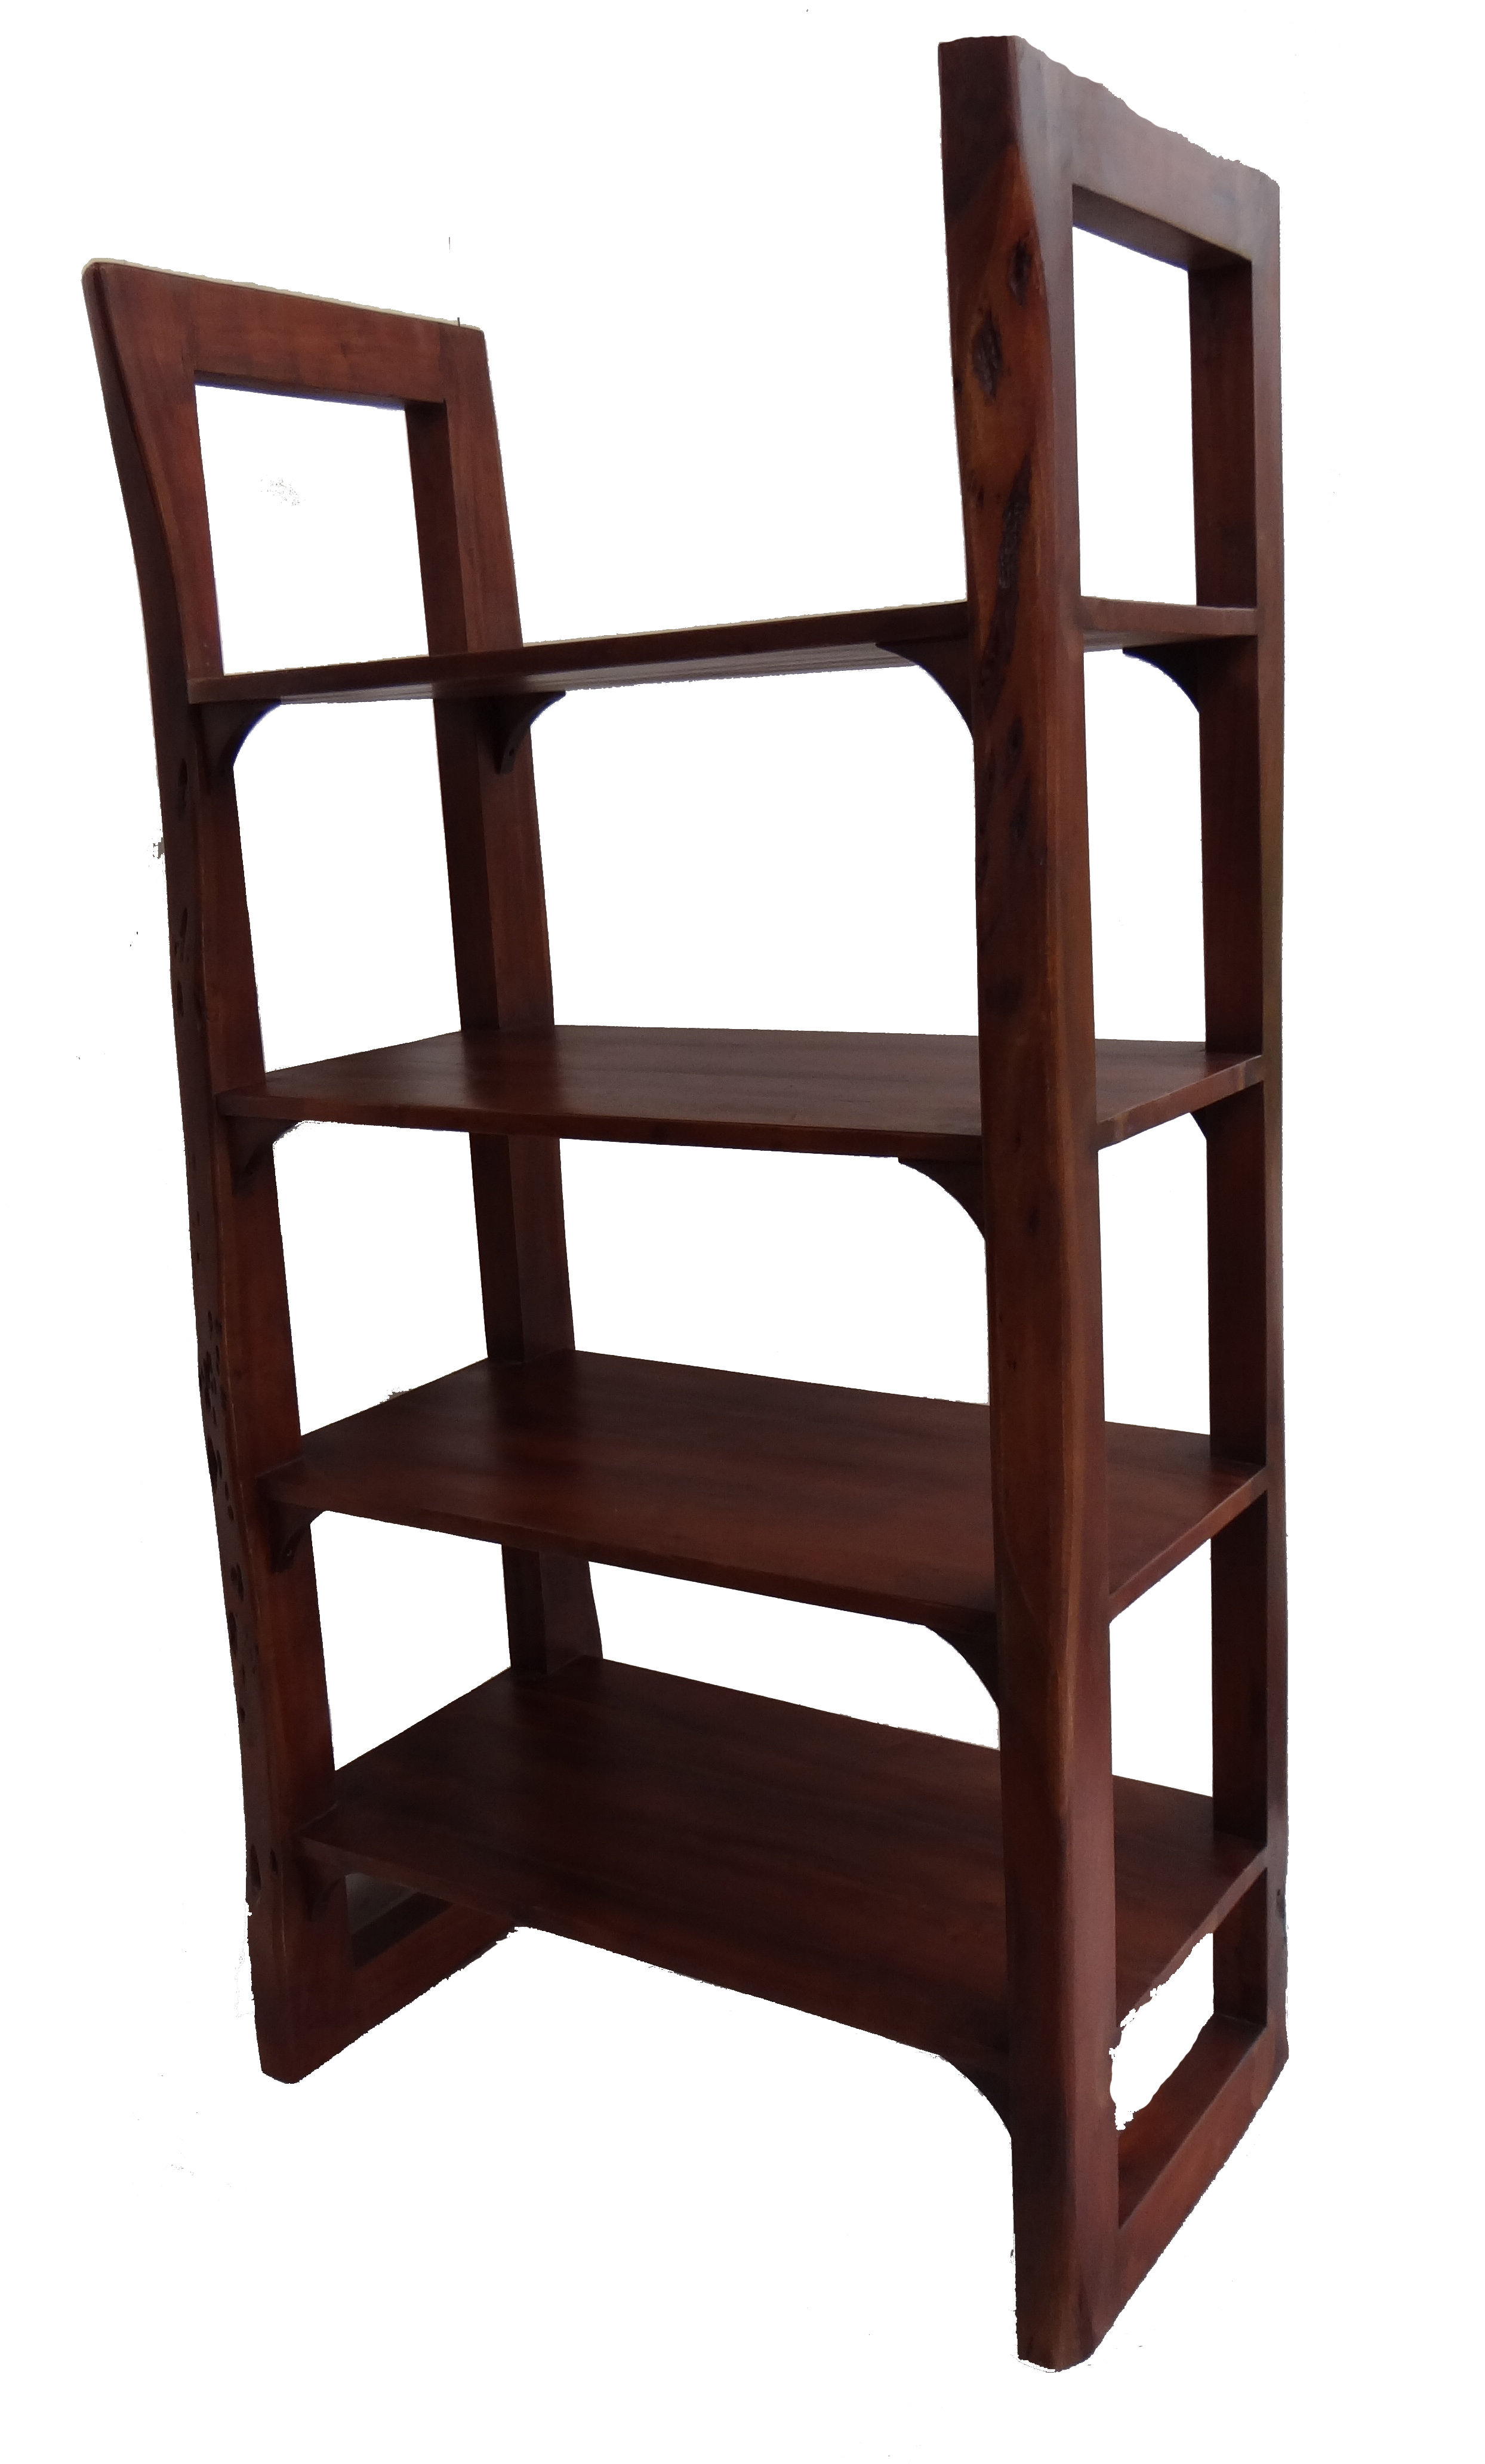 Newest Etagere Wood Bookcases You'll Love In  (View 11 of 20)